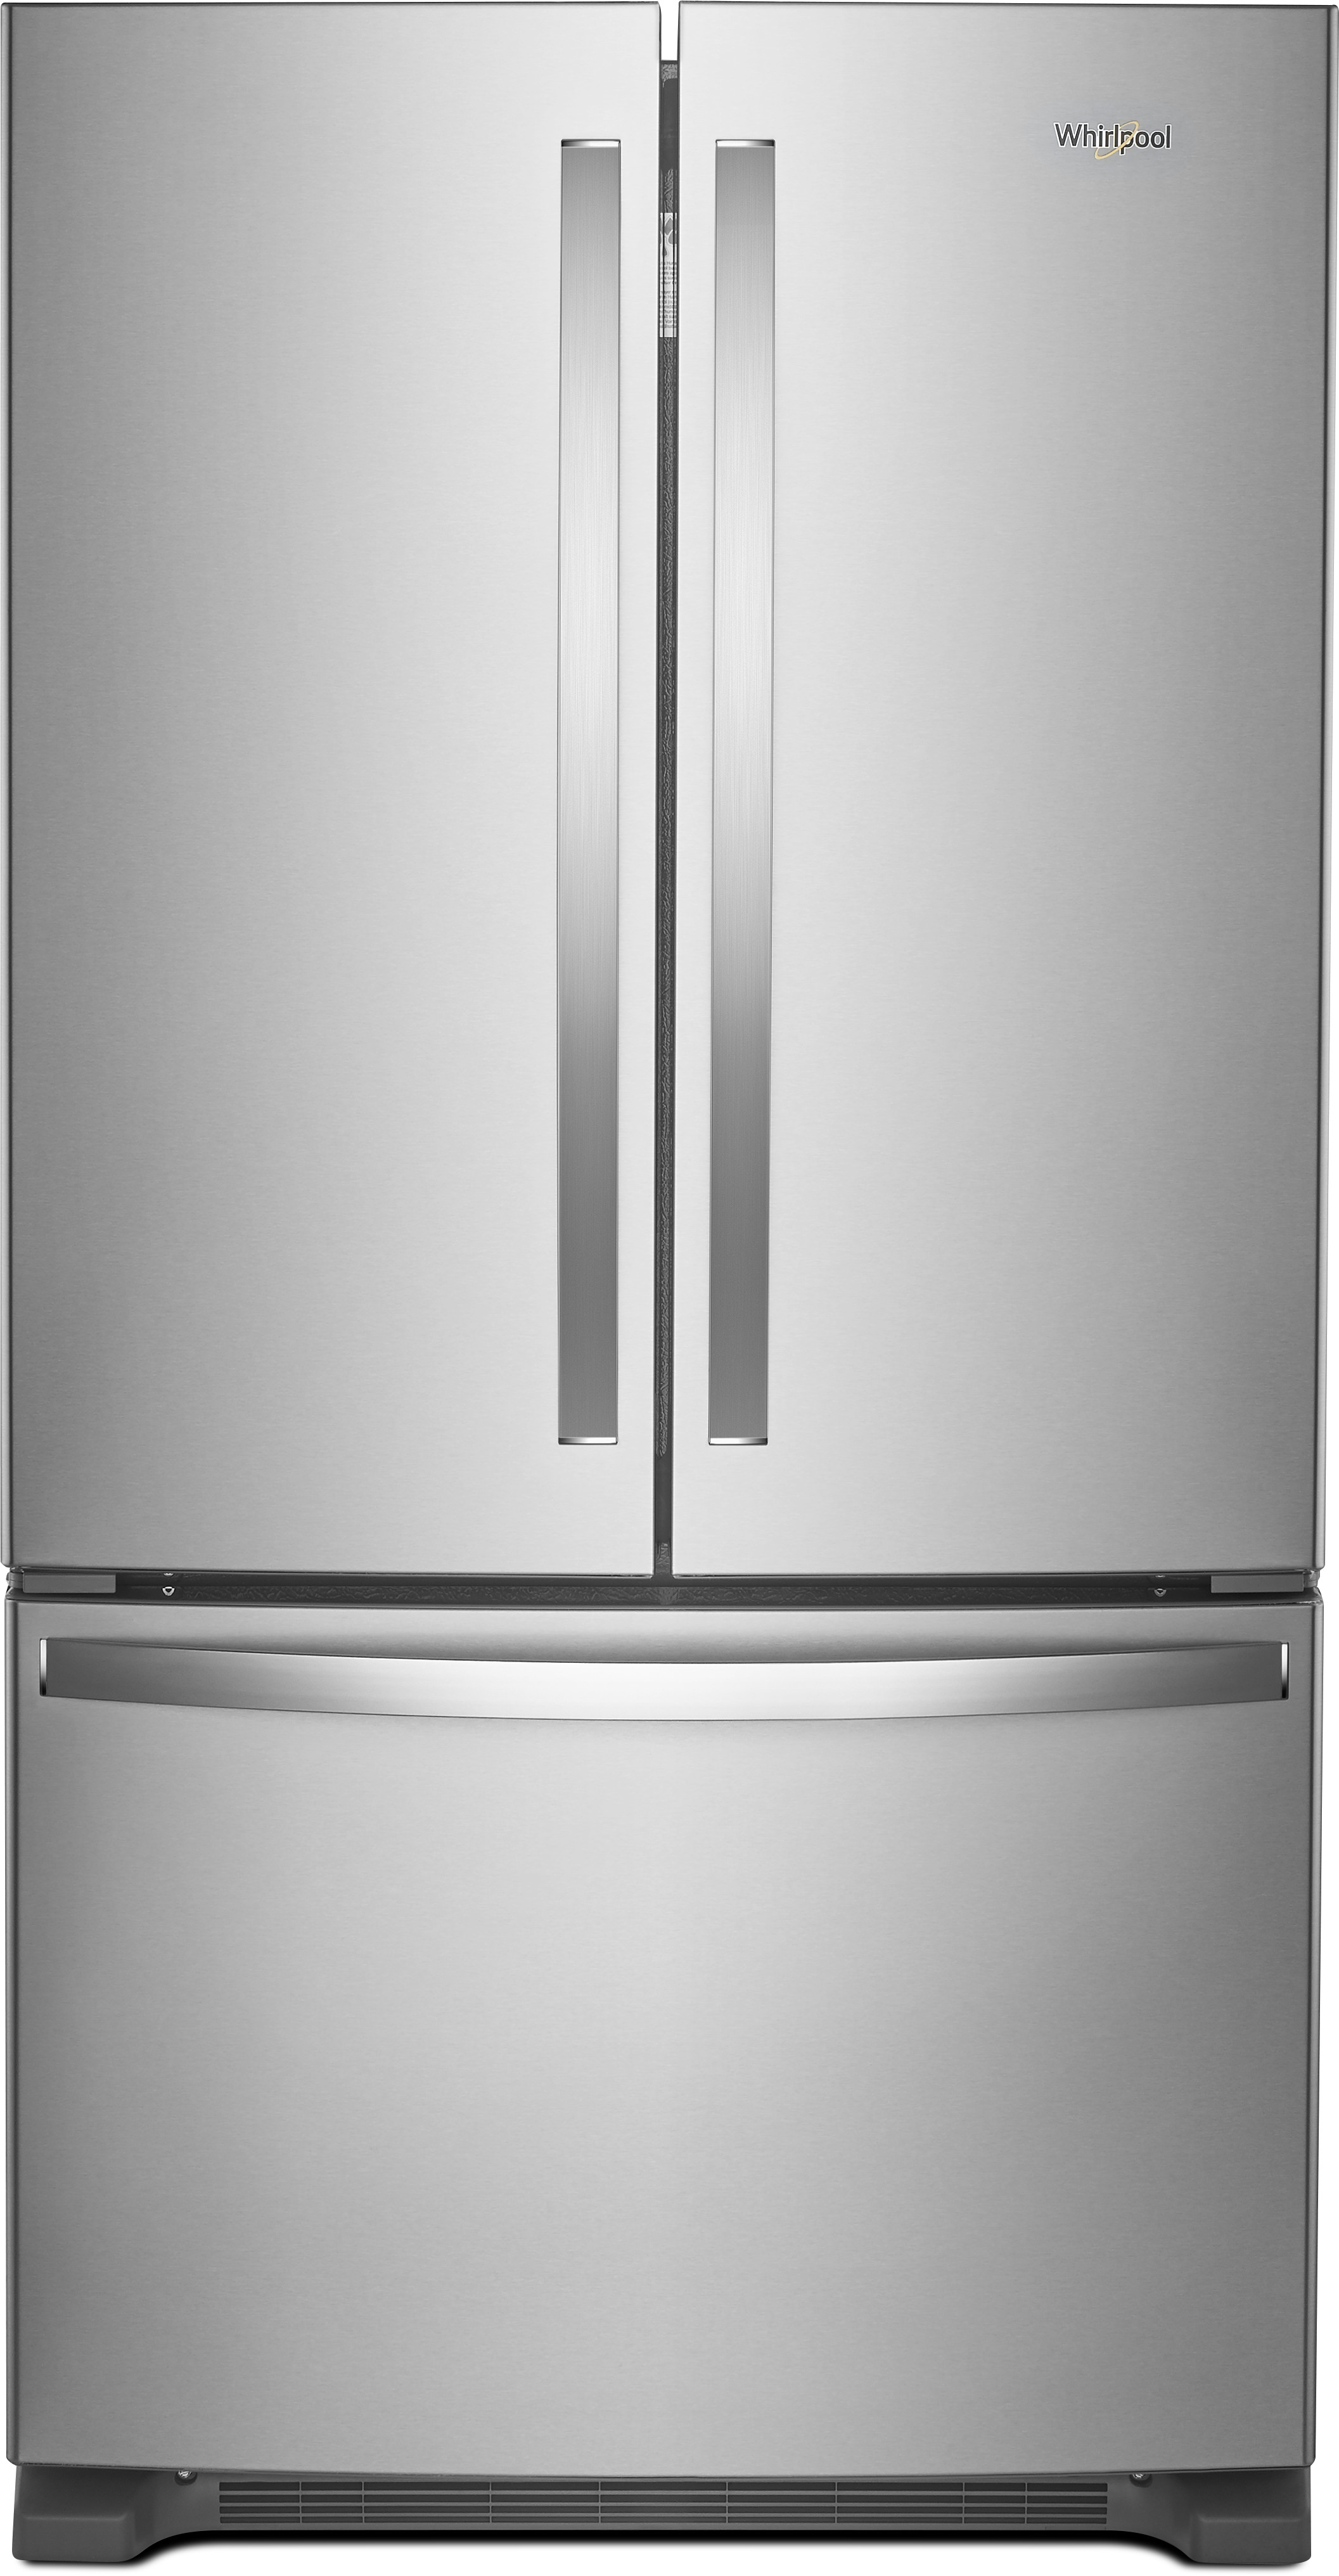 Whirlpool Wrf535swhz 36 Inch French Door Refrigerator With Interior Parts Diagram List For Model Wed7600xw0 Whirlpoolparts Dryer Image Disclaimer